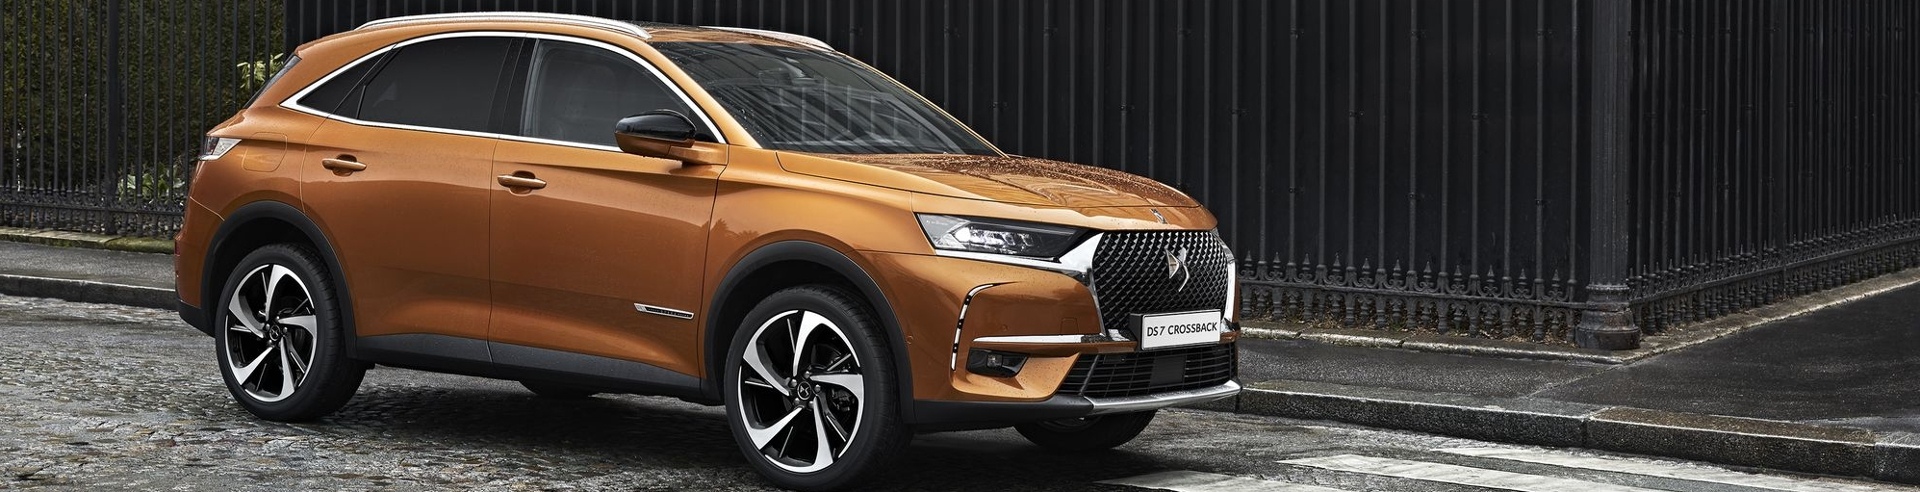 bandeau-ds7-crossback